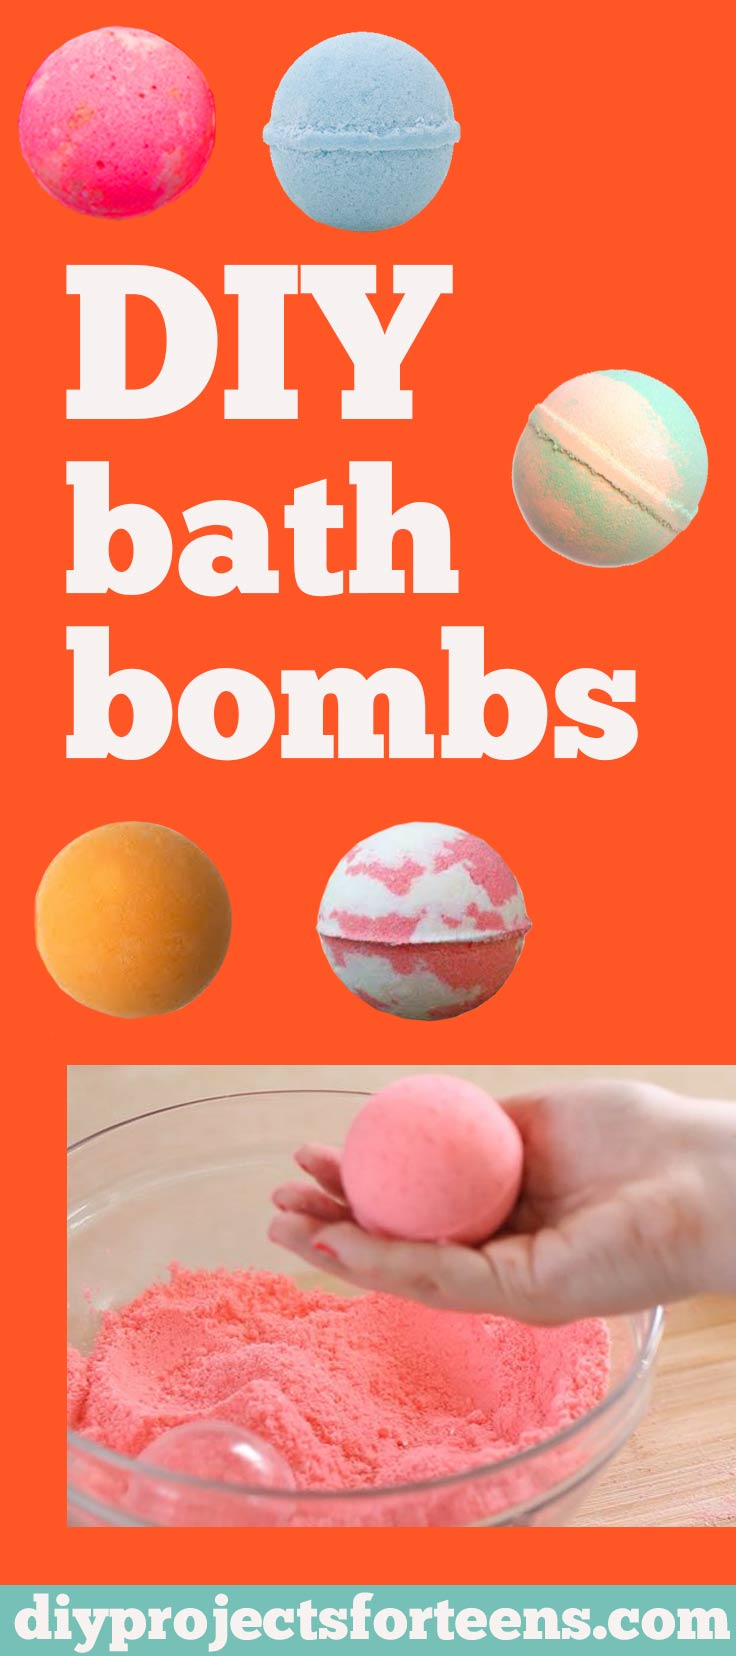 How to make diy lush bath bombs for Great crafts to make and sell